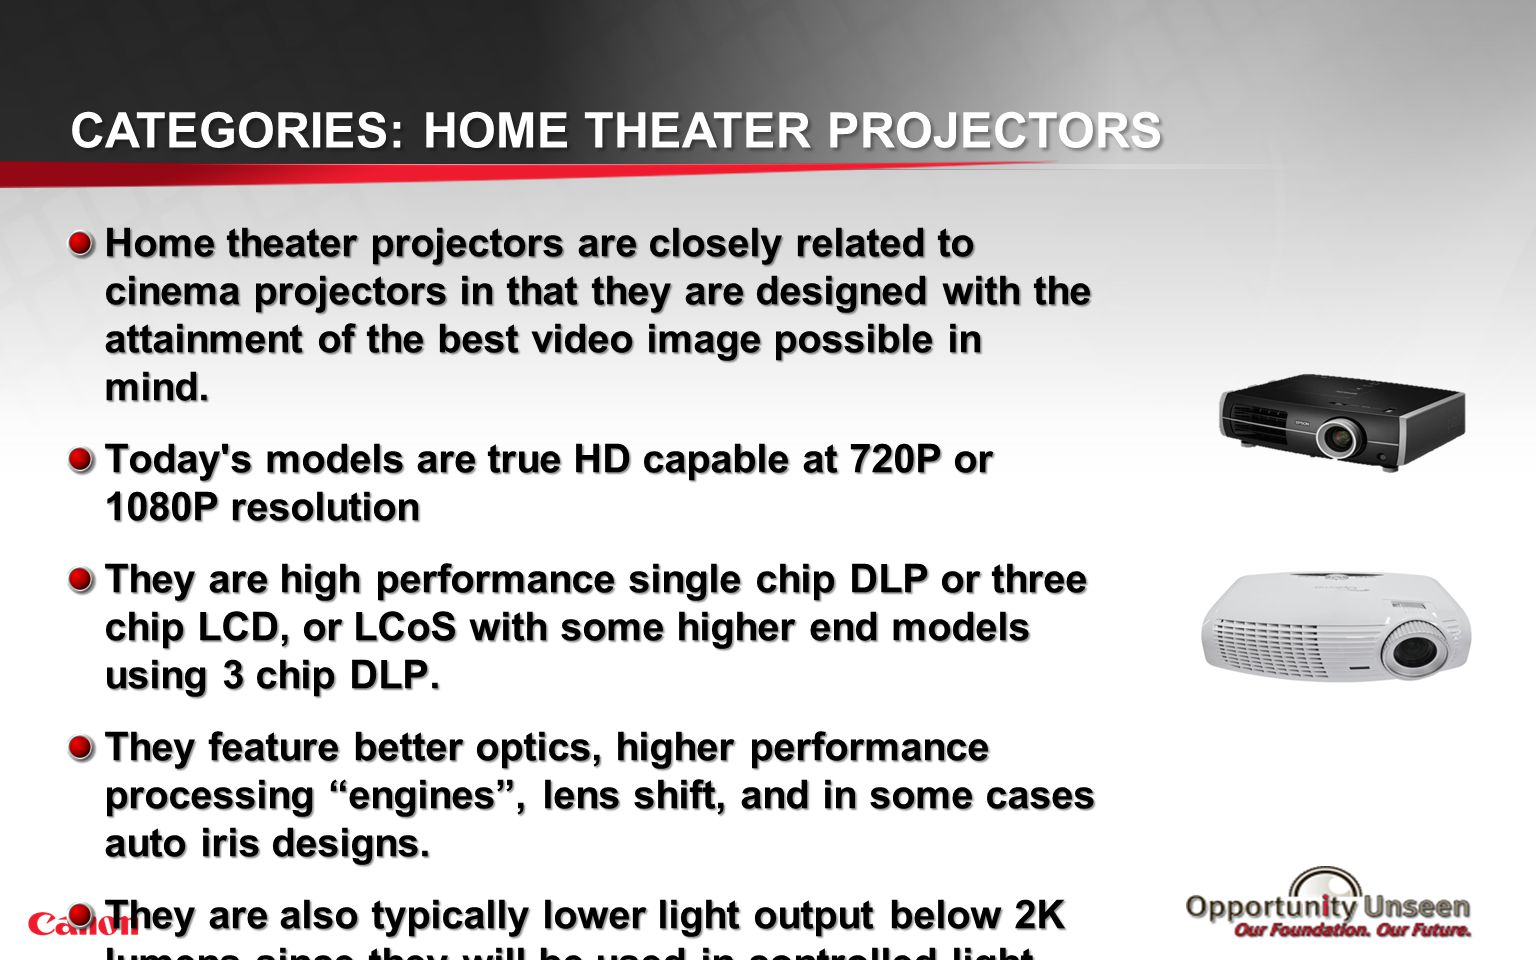 Categories: Cinema Projectors